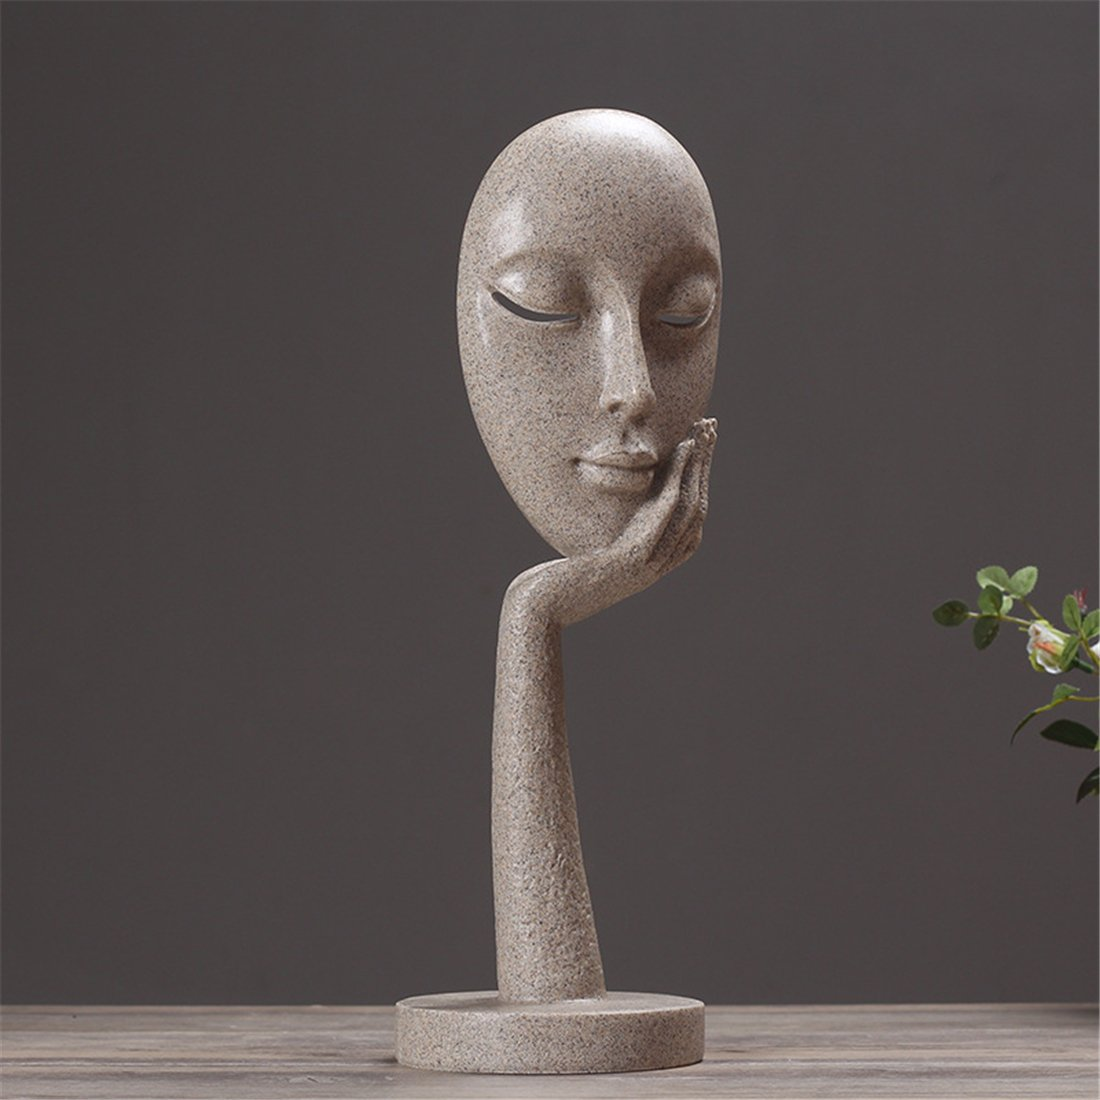 Elegant Donna Face Resin Sculpture Artwork Art Home Decoration - Figurine Creative Ornamenti Da Scrivania Statue Living Room Restaurant Café Bar Decor,L